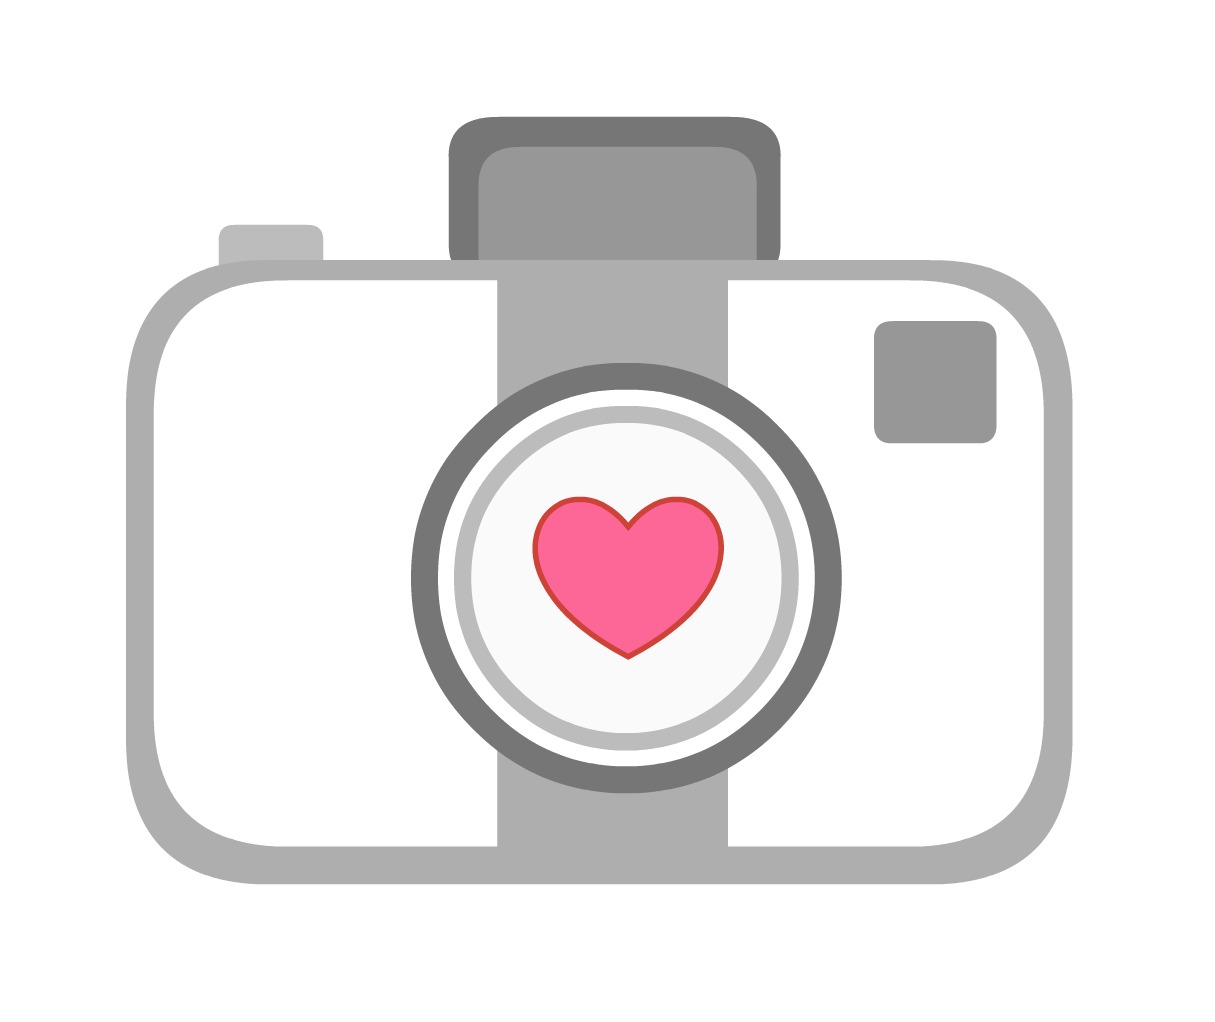 image of camera clipart #14